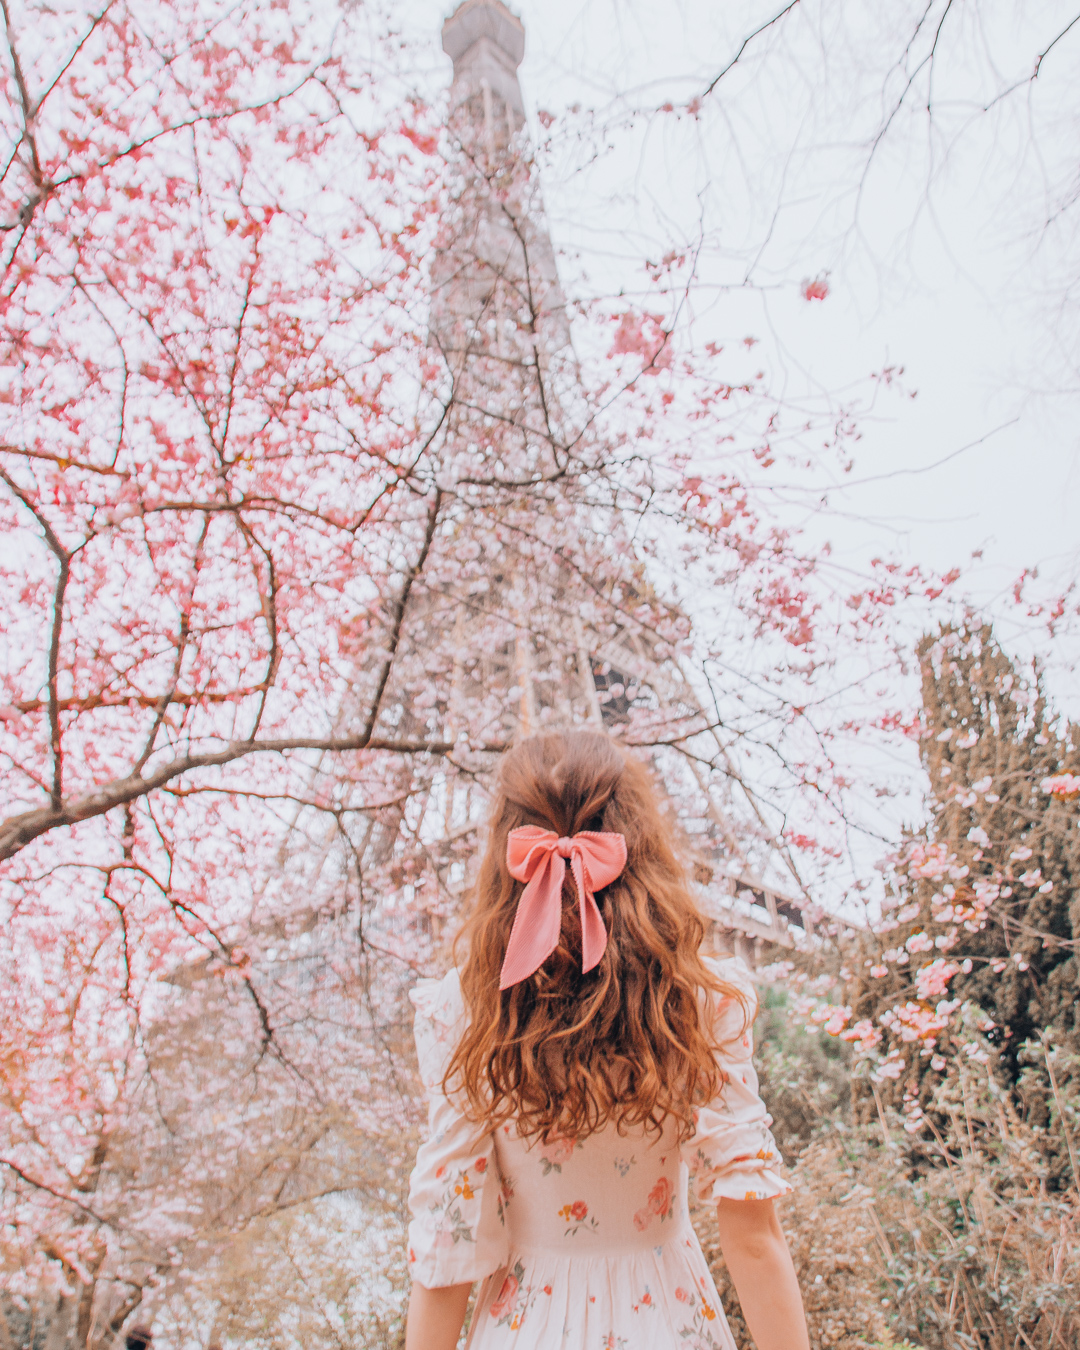 Girl in front of a pink tree and the Eiffel Tower